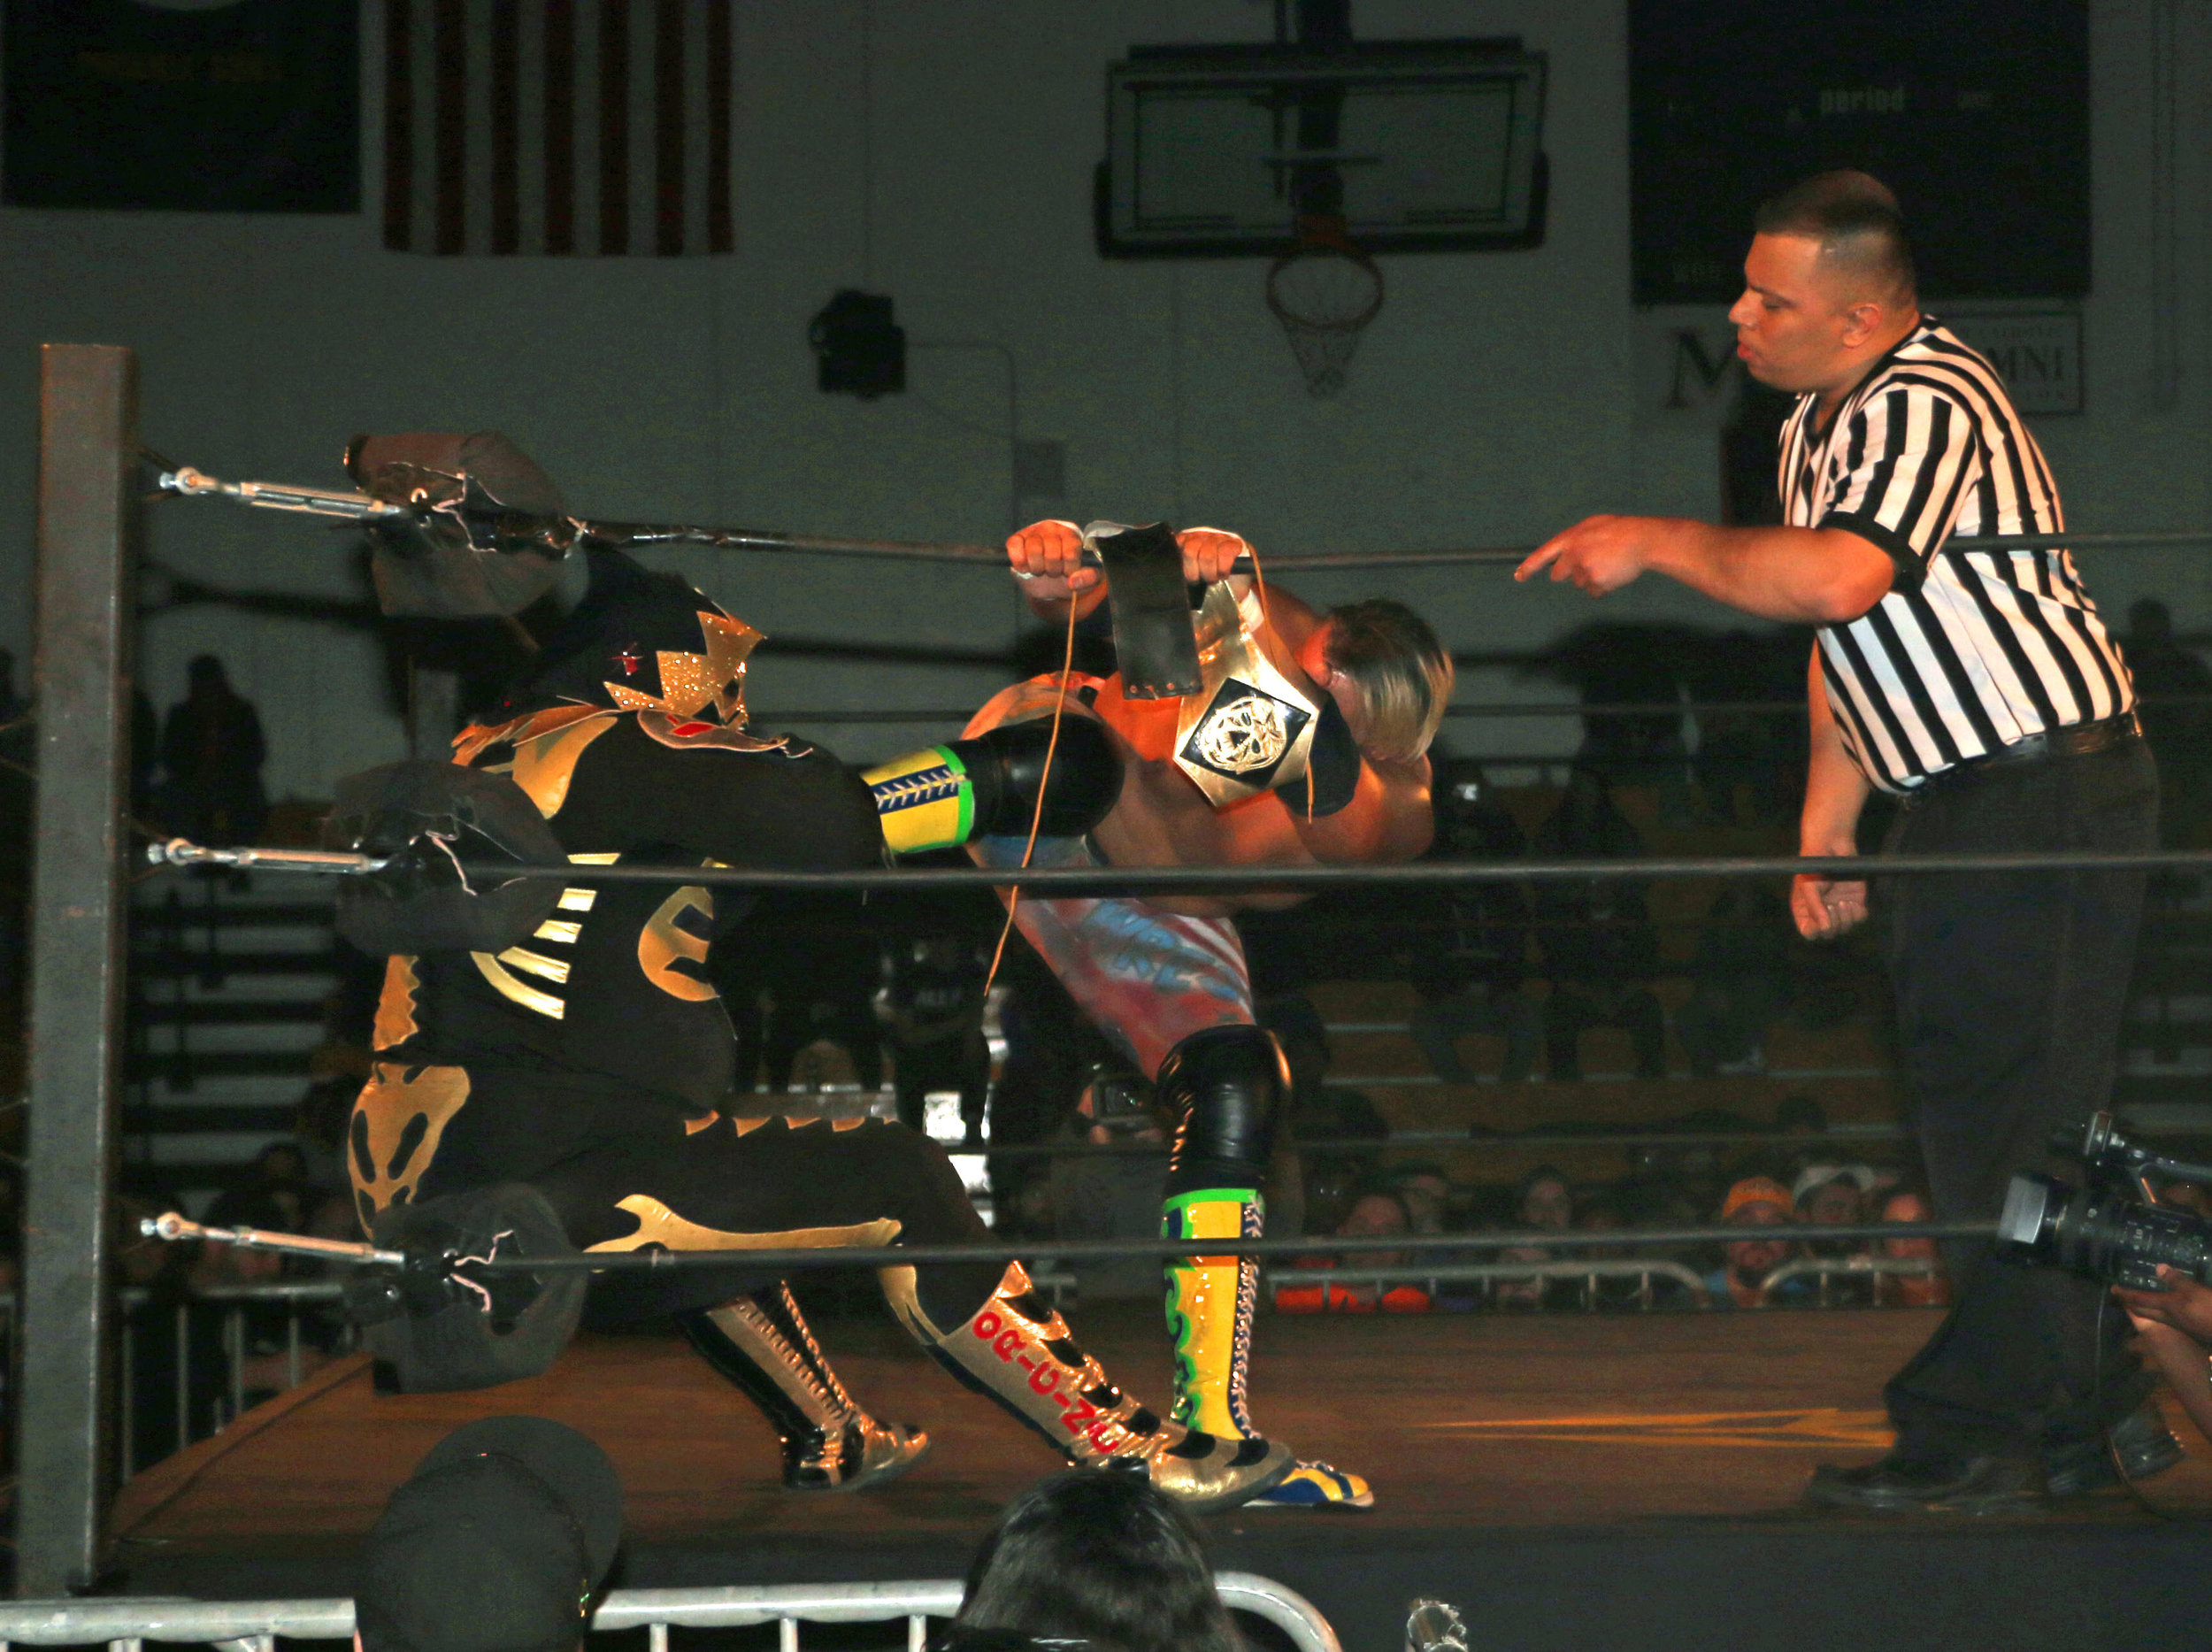 Referee Jeremy Tillema, right, yells at Sam Adonis for choking LA Park in the corner.